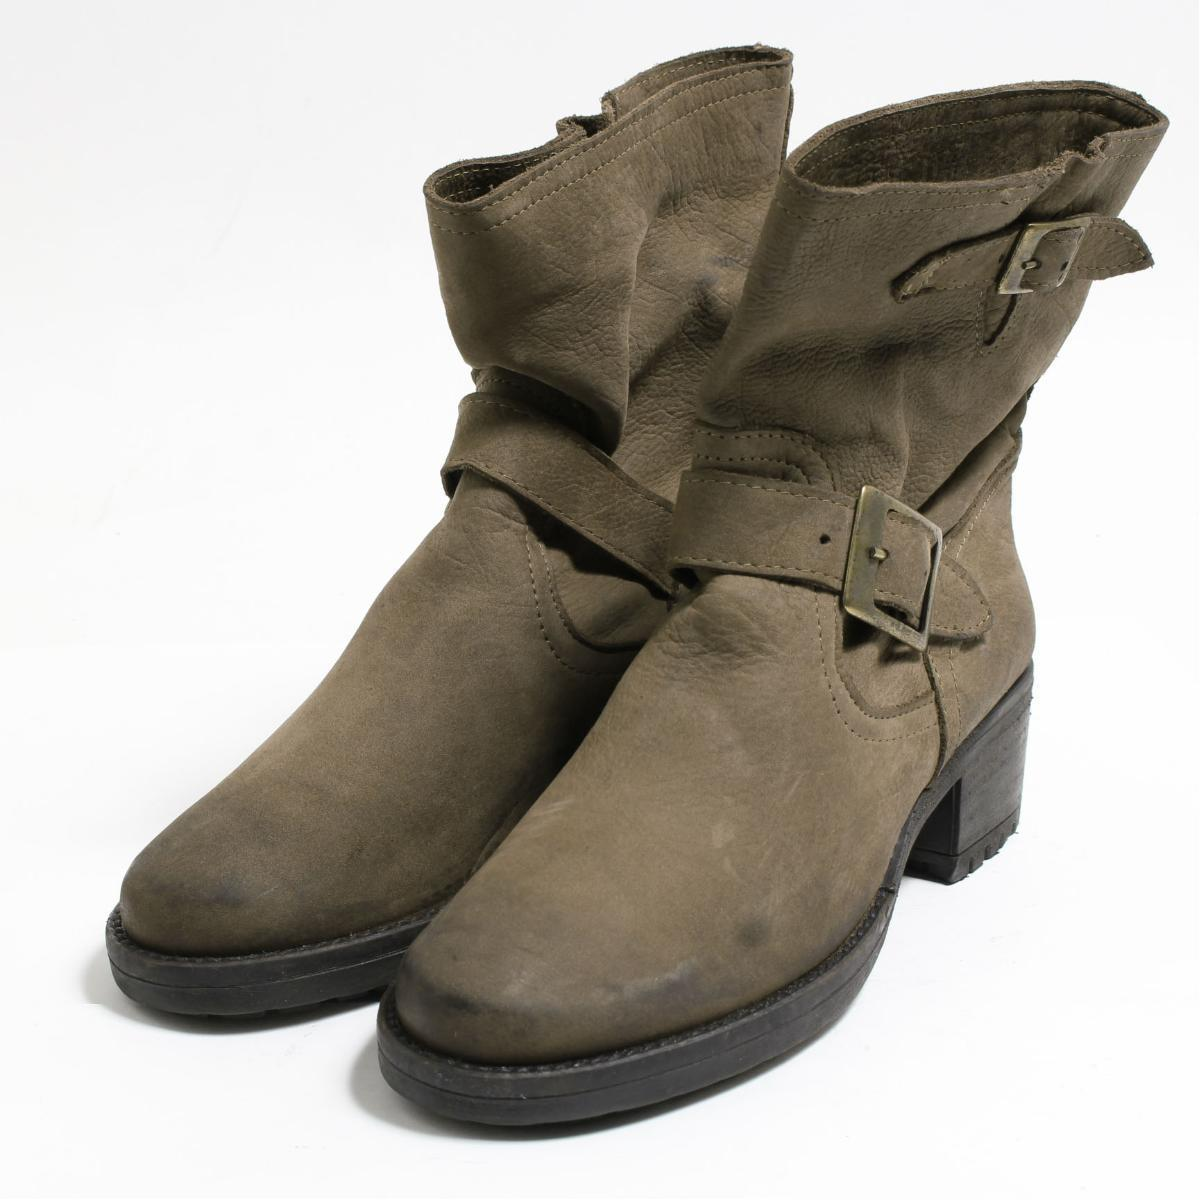 9b97b85101c 38 Lady's 24.0cm /boo3263 made in short engineer boots Italy